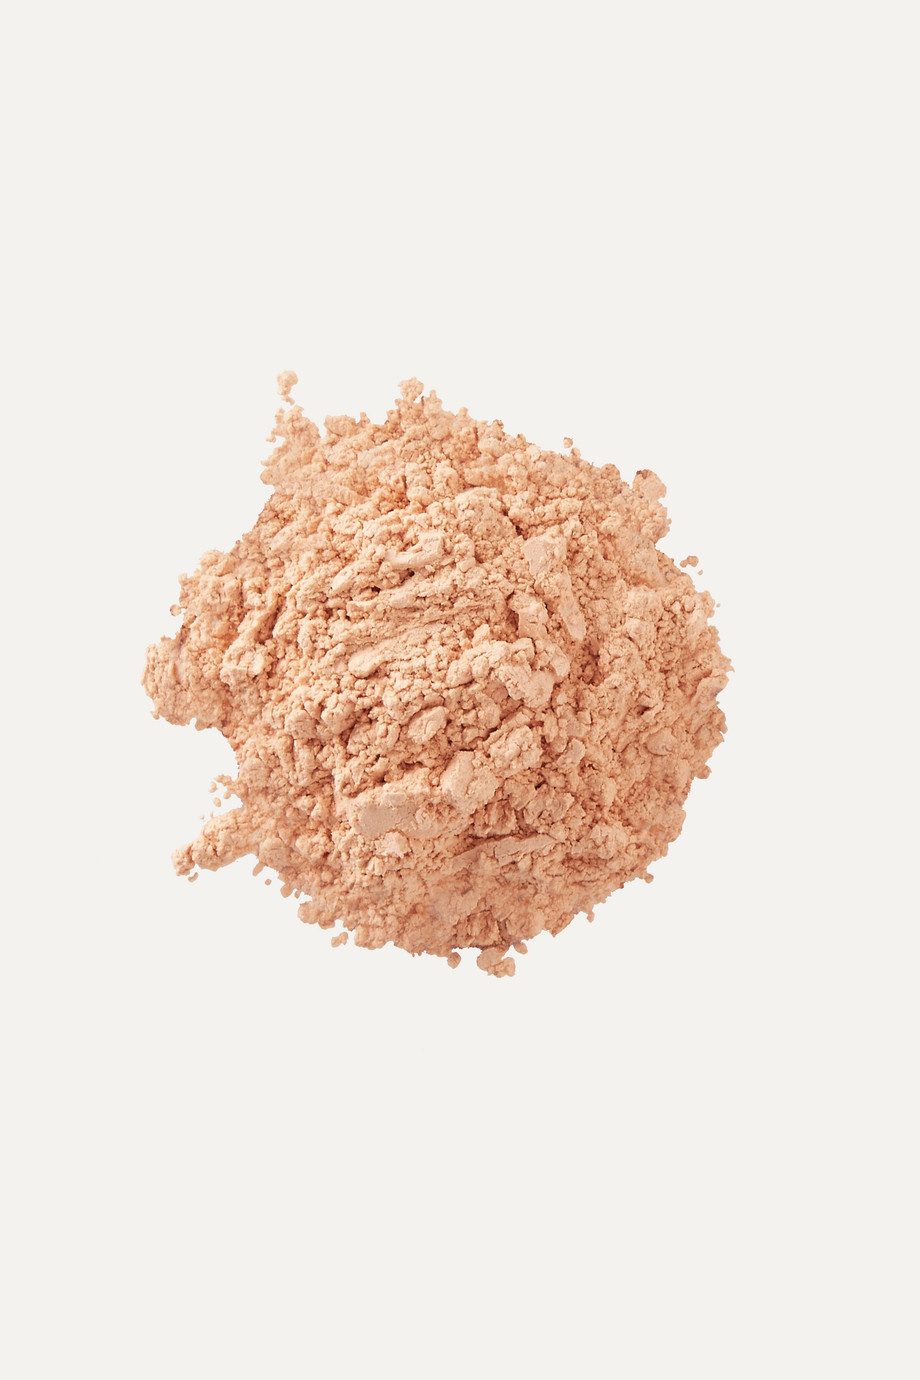 BY TERRY Hyaluronic Tinted Hydra-Powder - Apricot Light No. 2